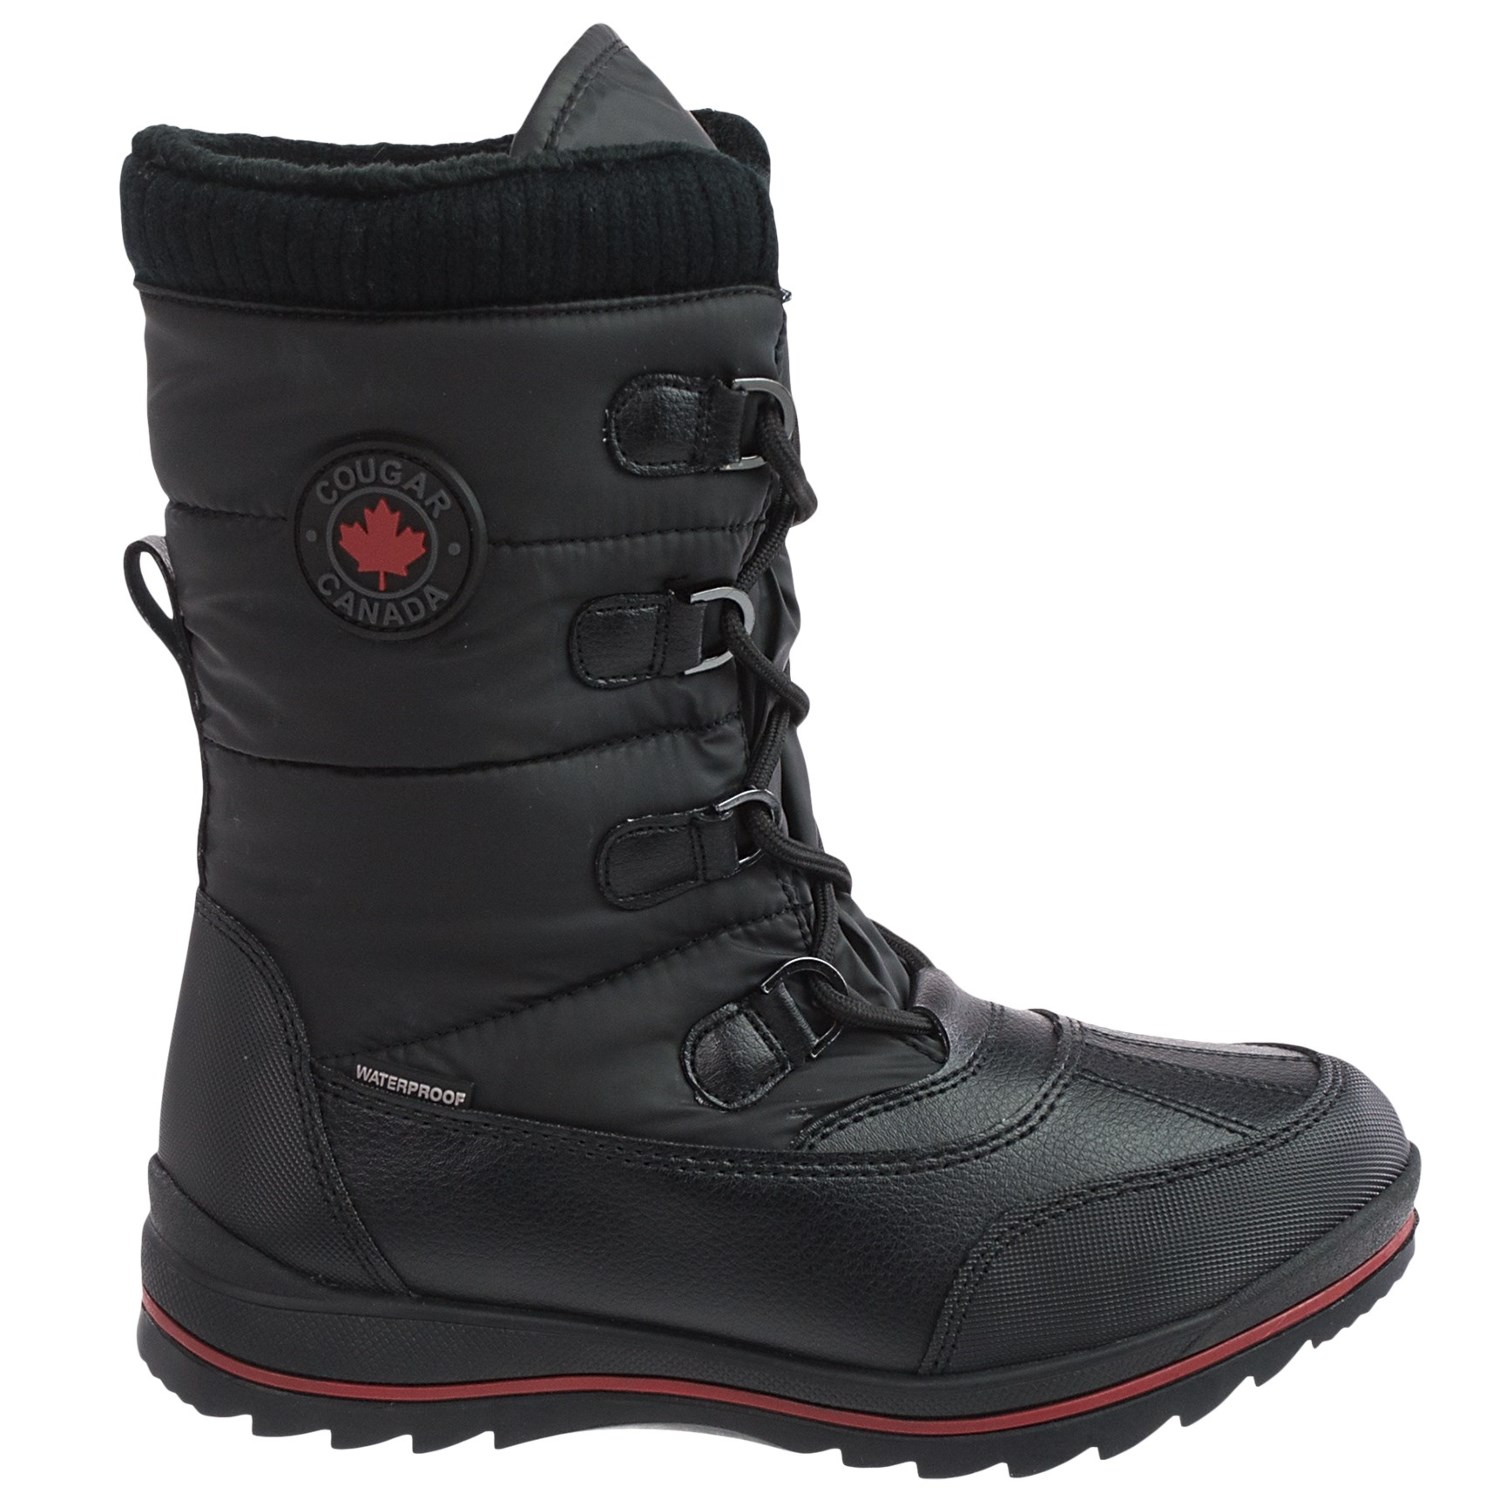 waterproof cougar women Cougar women's boots : find the latest styles of shoes from overstockcom your online women's shoes store get 5% in rewards with club o.